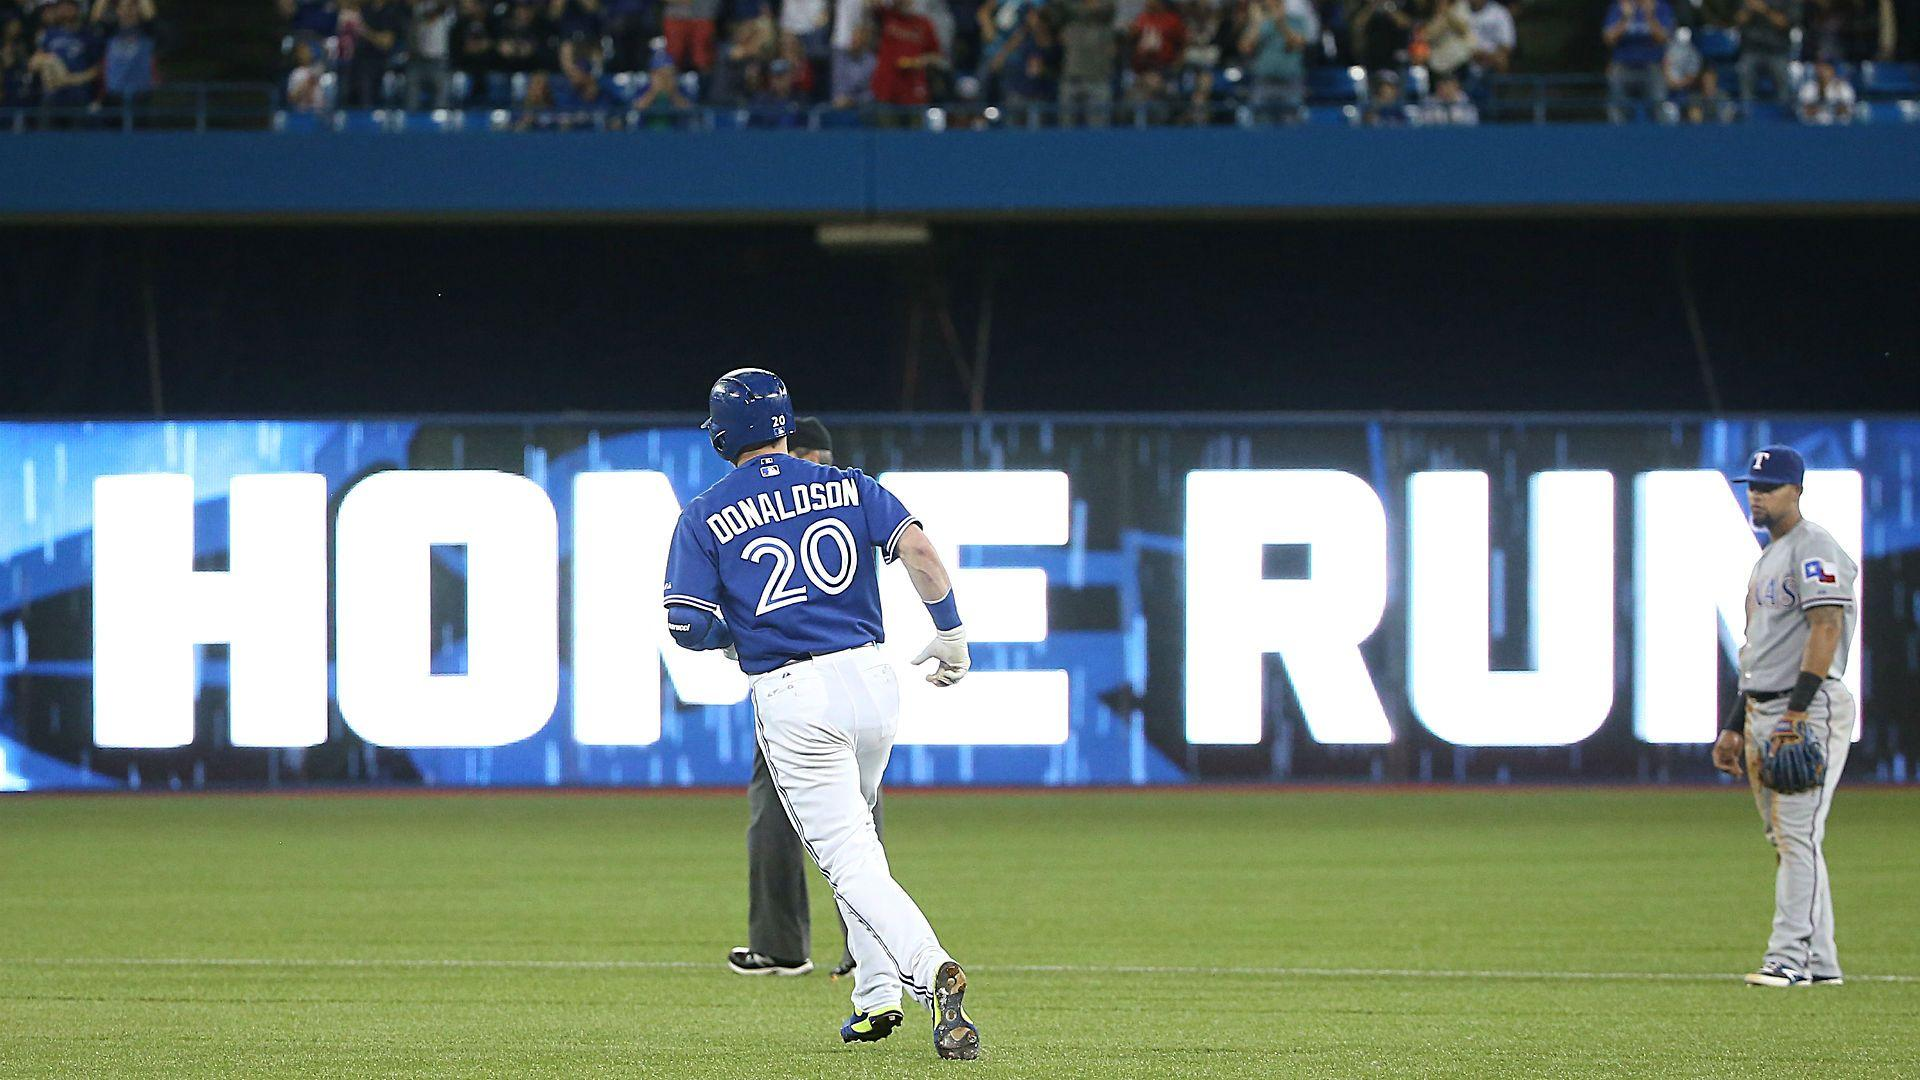 Take that, Pete Rose: Josh Donaldson homers in first at